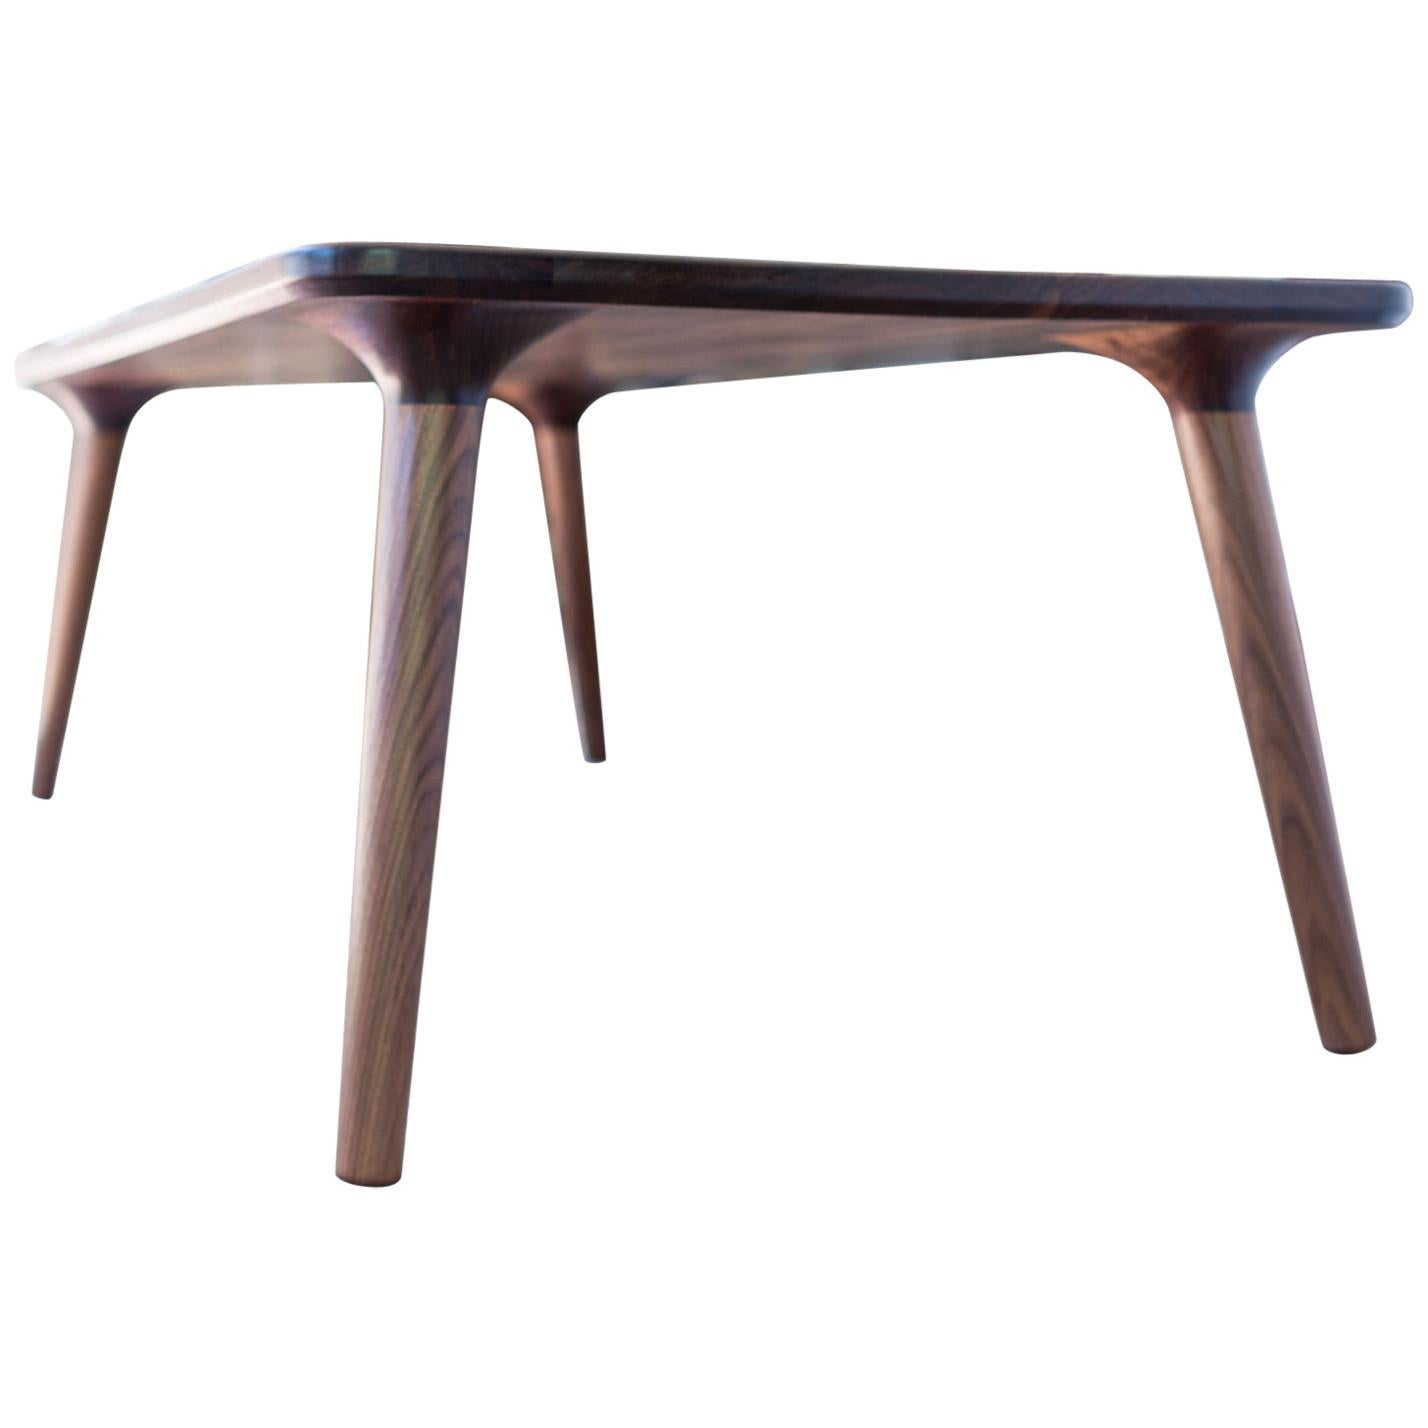 Coffee Accent Table handmade from Walnut Wood, by Fernweh Woodworking